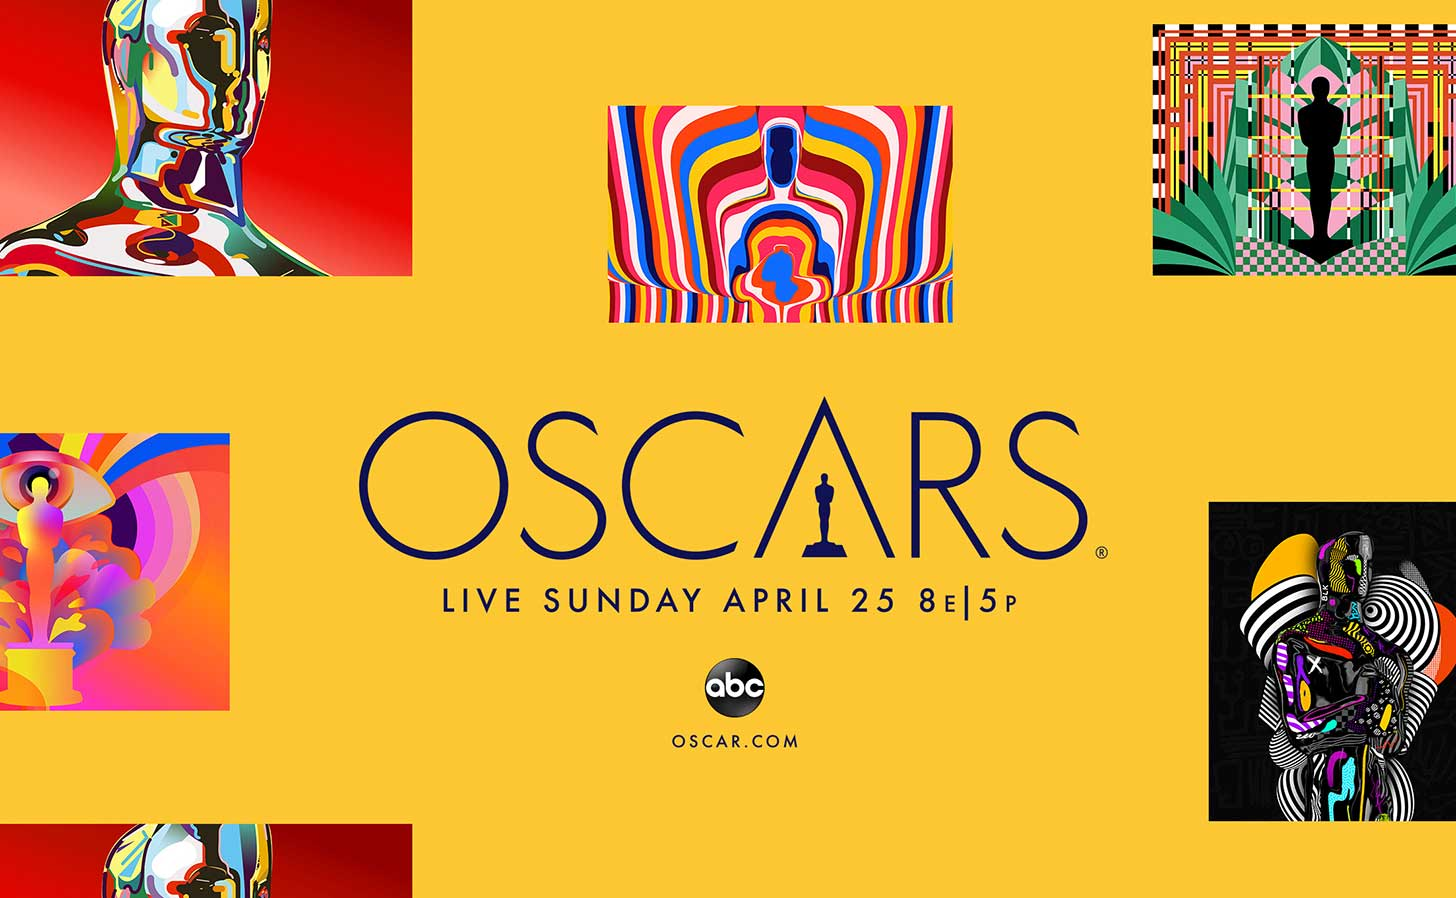 The 93rd Oscars will be held on Sunday, April 25, 2021. Photo: Academy of Motion Picture Arts and Sciences